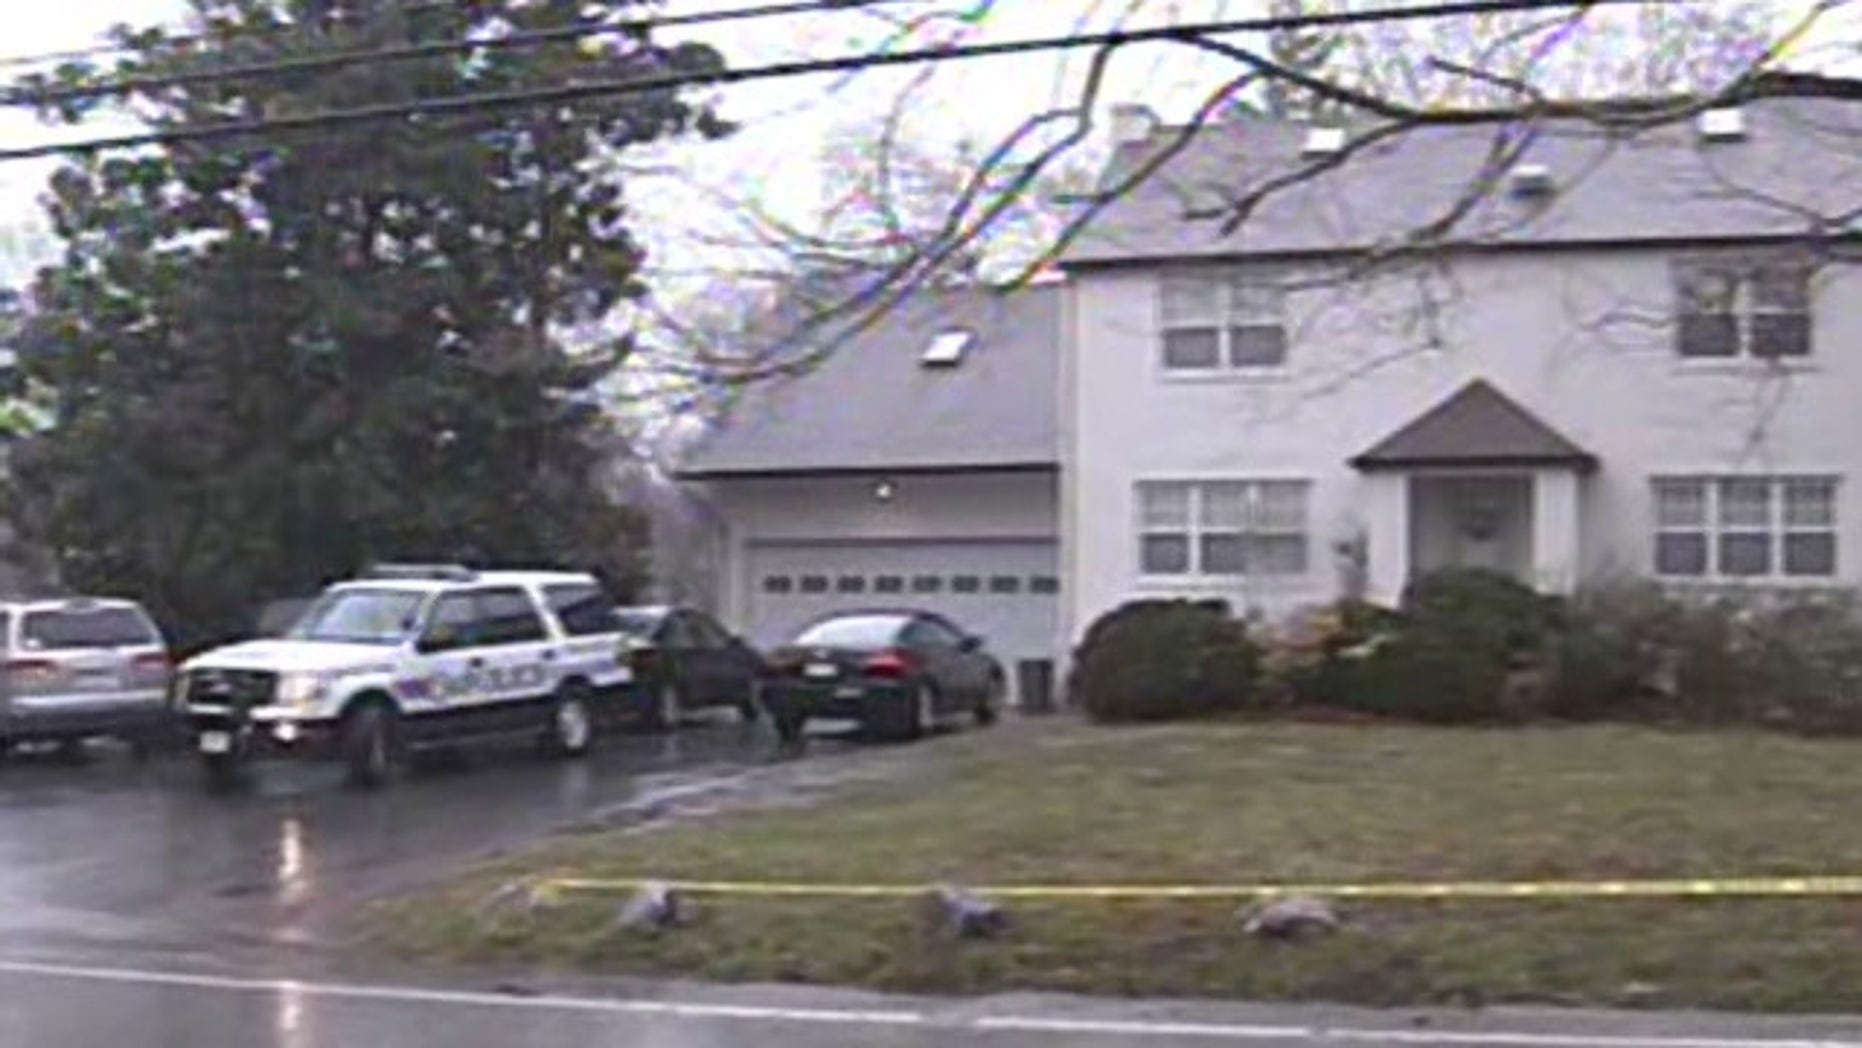 Authorities say Joseph McAndrew Jr. stabbed his family to death in a bloody rampage Saturday inside their Montgomery County, Pa., home (MyFoxPhilly.com).